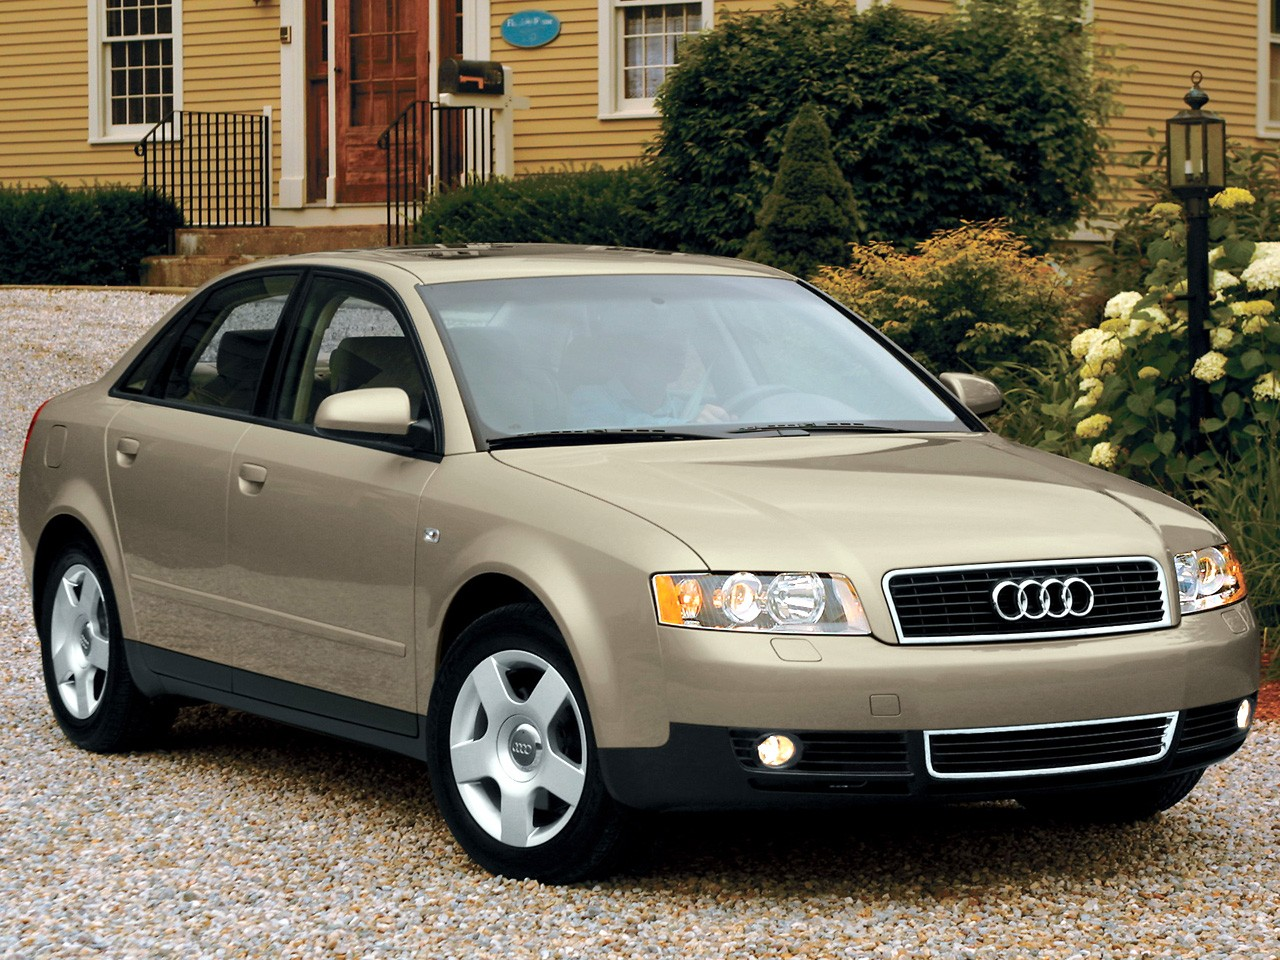 Audi A4 Quattro 2001 Specs Autos Post